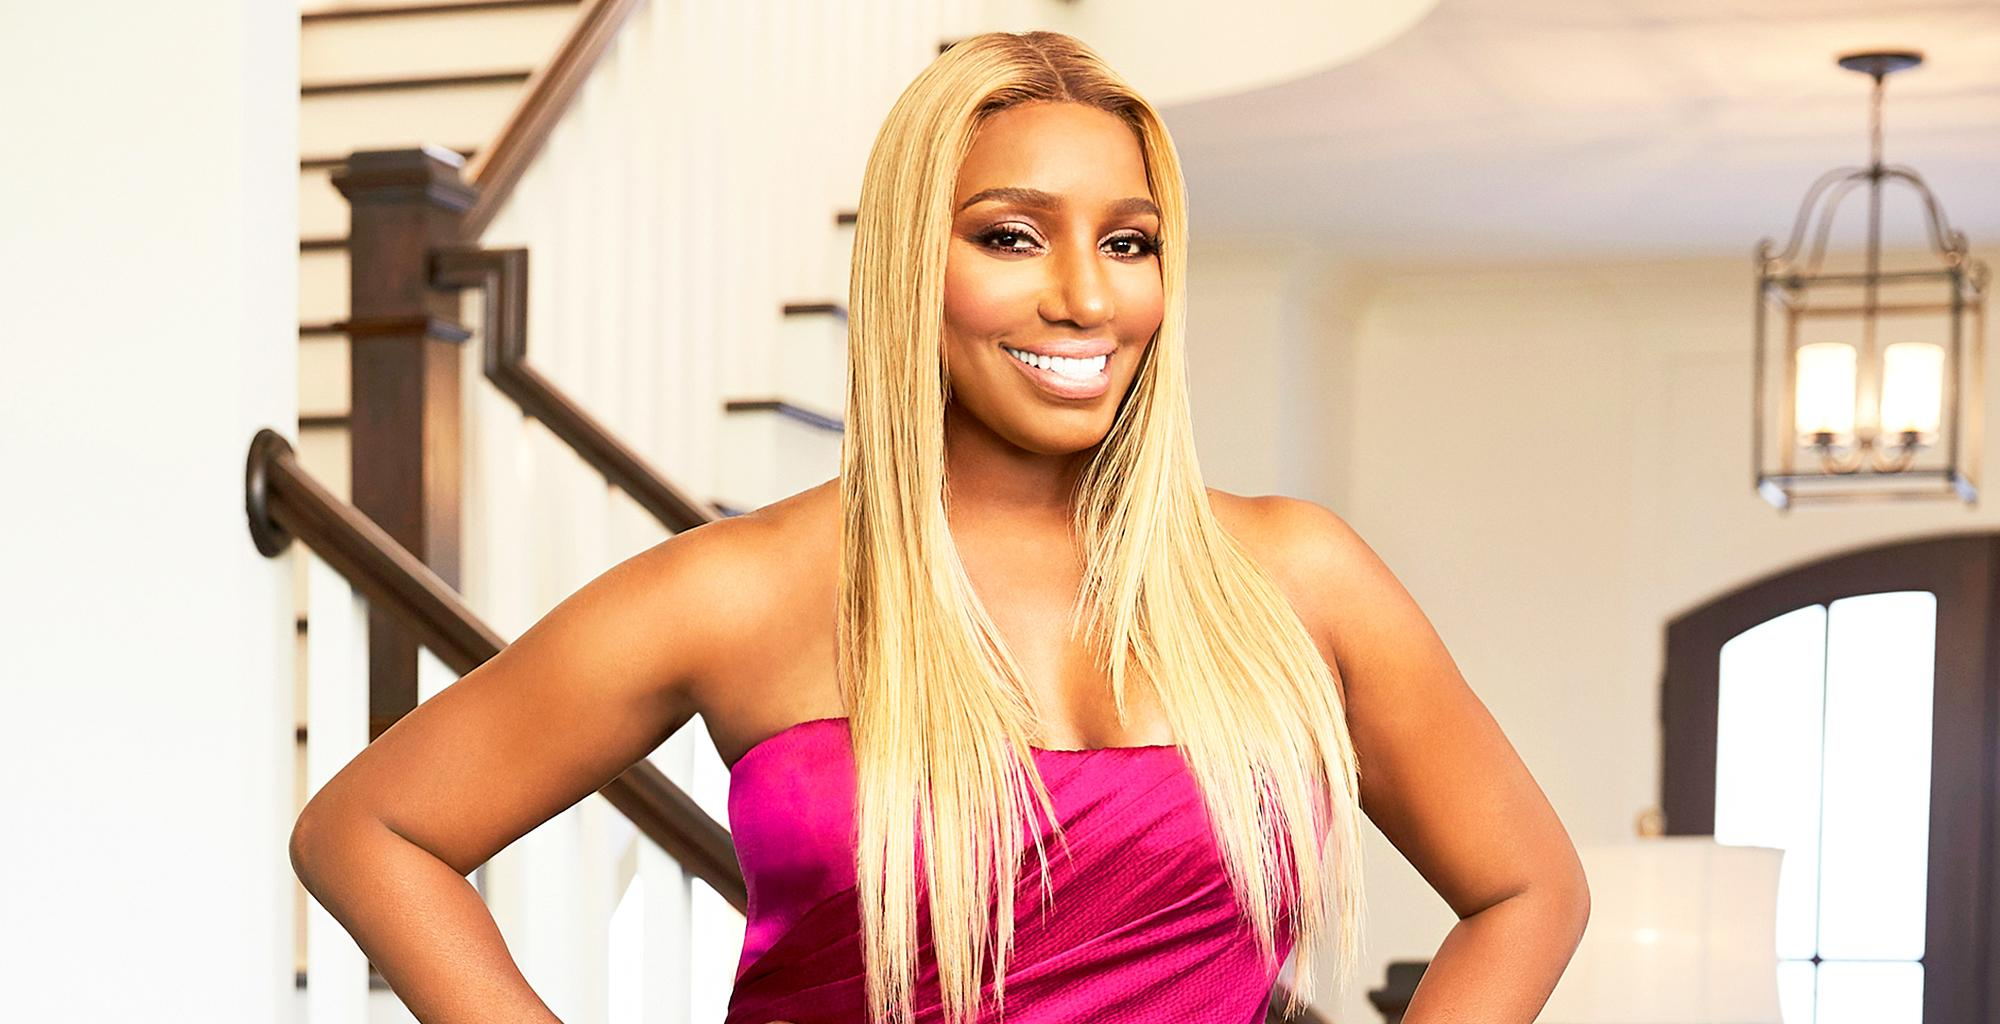 NeNe Leakes Addresses Fans In Her Favorite White T-Shirt, Flaunting A Massive Cleavage - See The Video